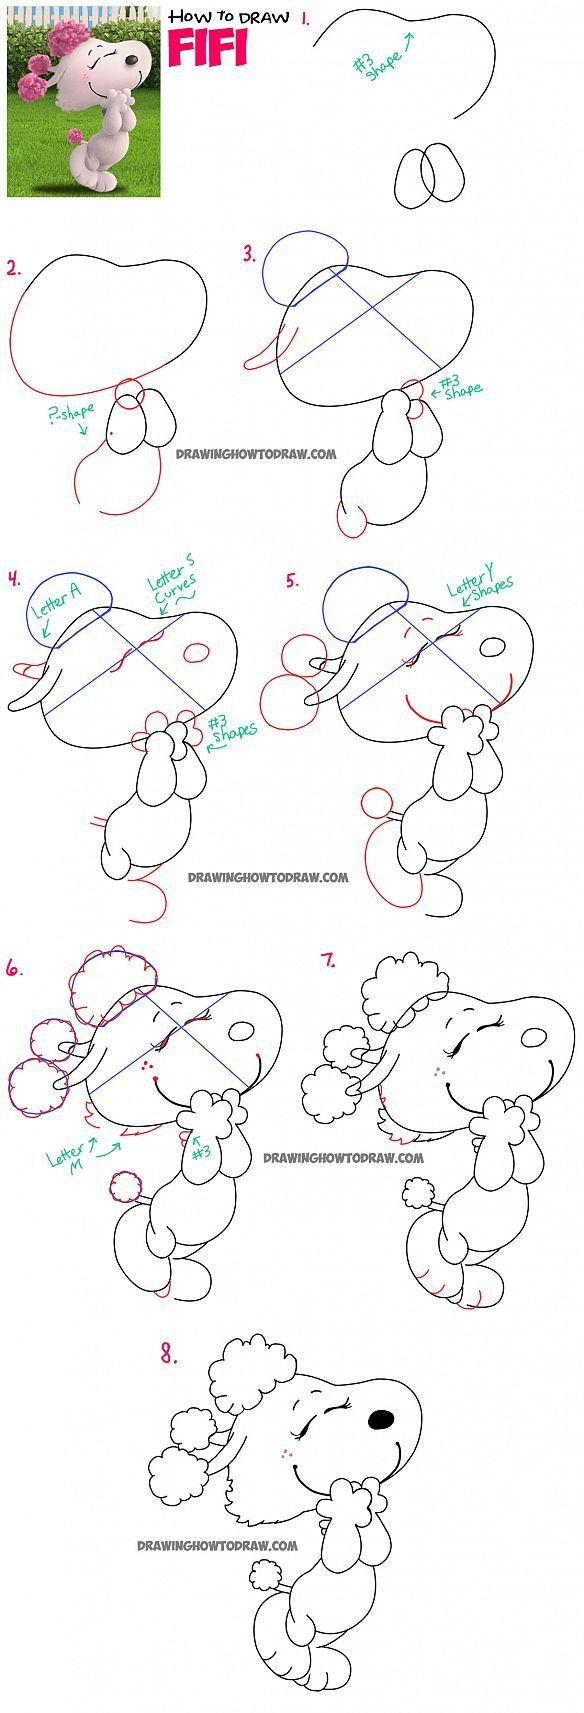 How to Draw Fifi the Girl Dog from The Peanuts Movie Step by Step Drawing Tutorial